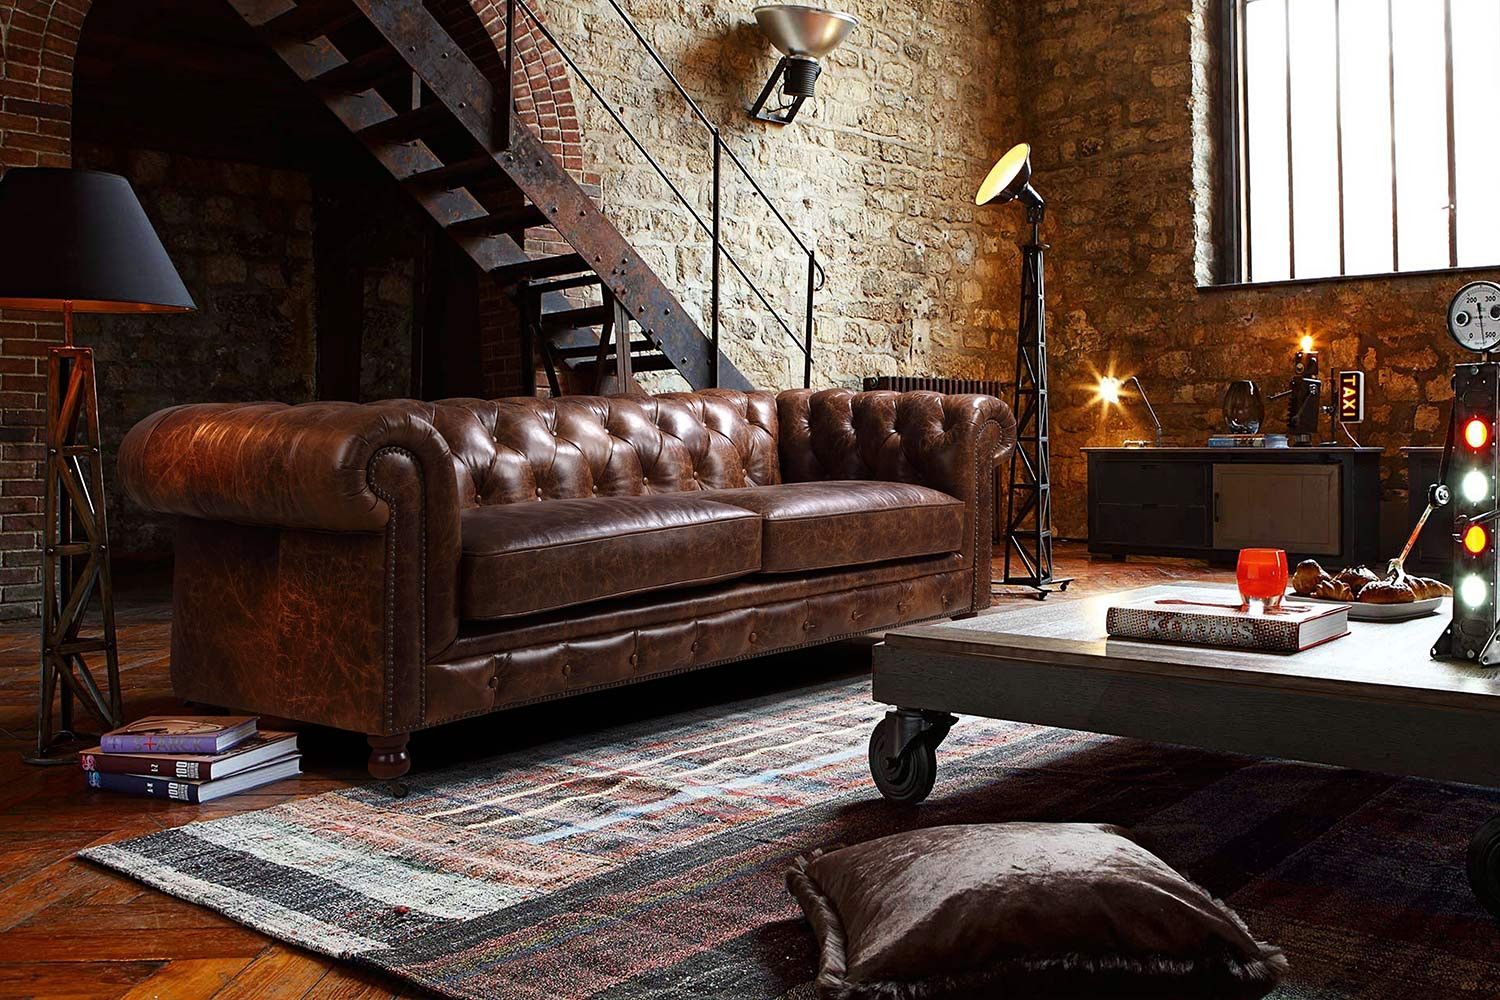 kensington chesterfield leather sofa by rose moore in an industrial interior gekuifde sofa huismeubilair